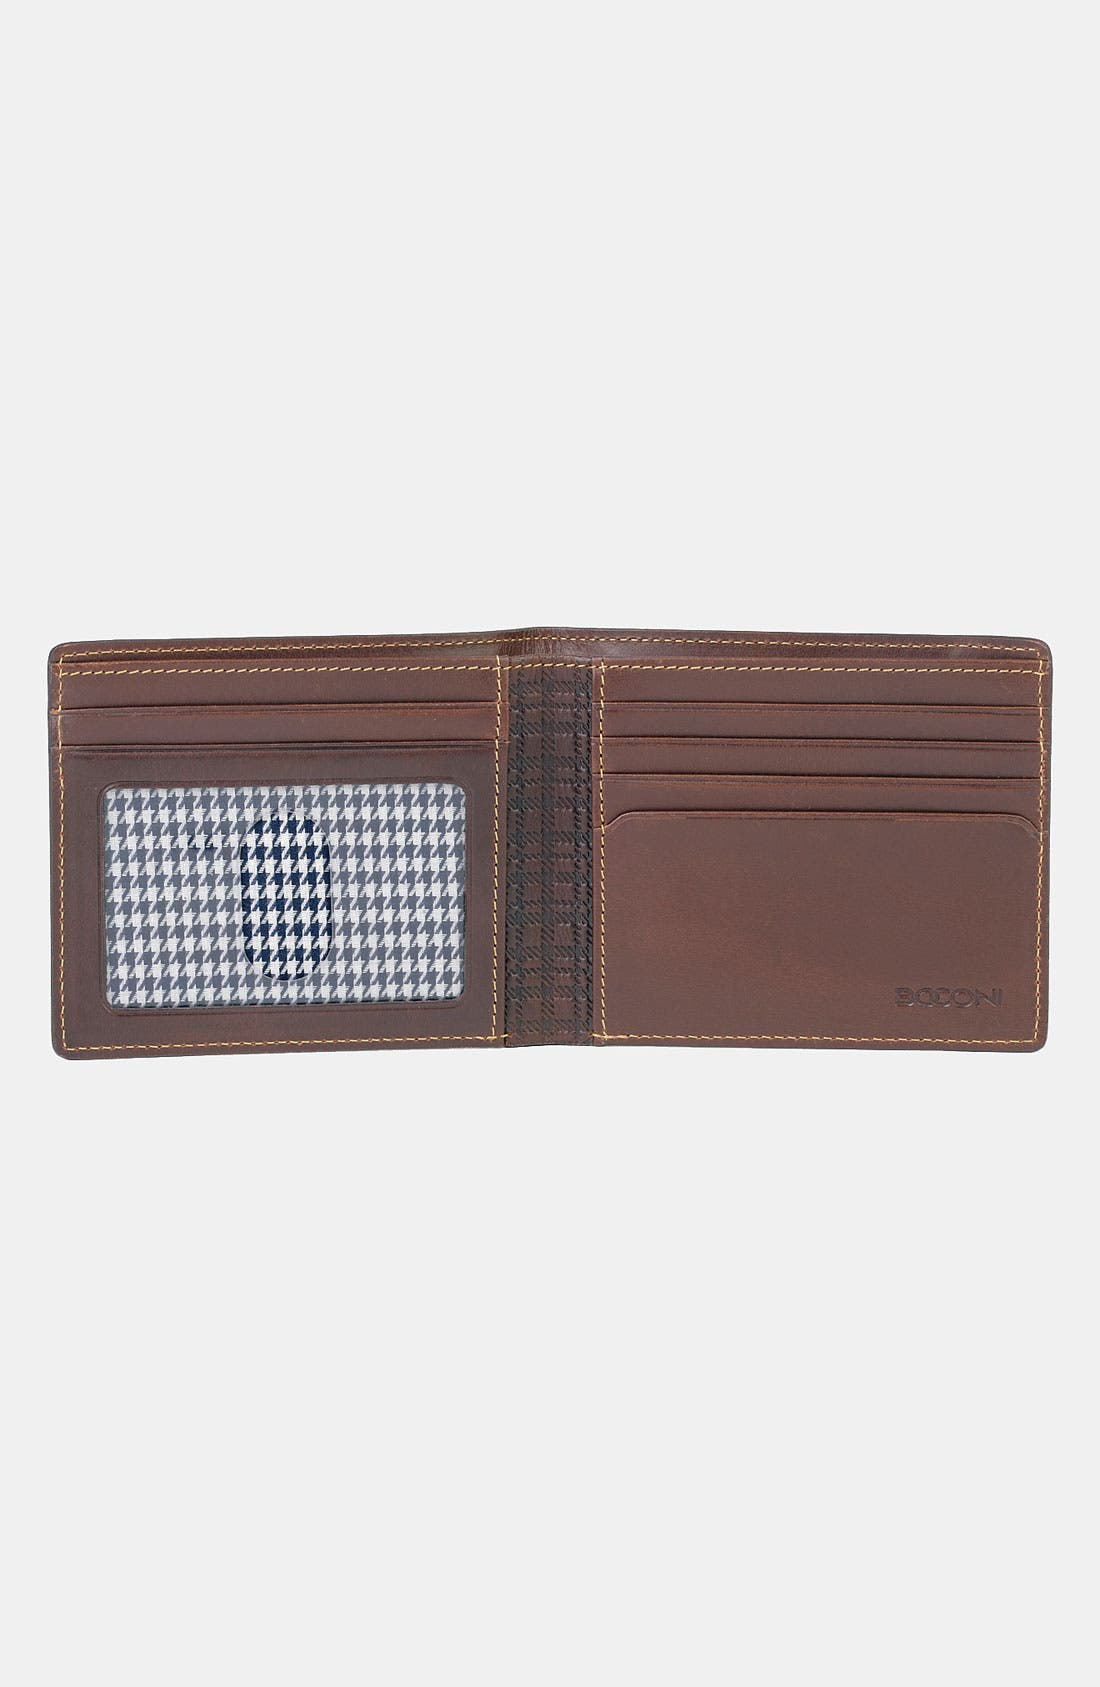 'Bryant' RFID Blocker Slimfold Wallet,                             Alternate thumbnail 2, color,                             Antique Mahogany